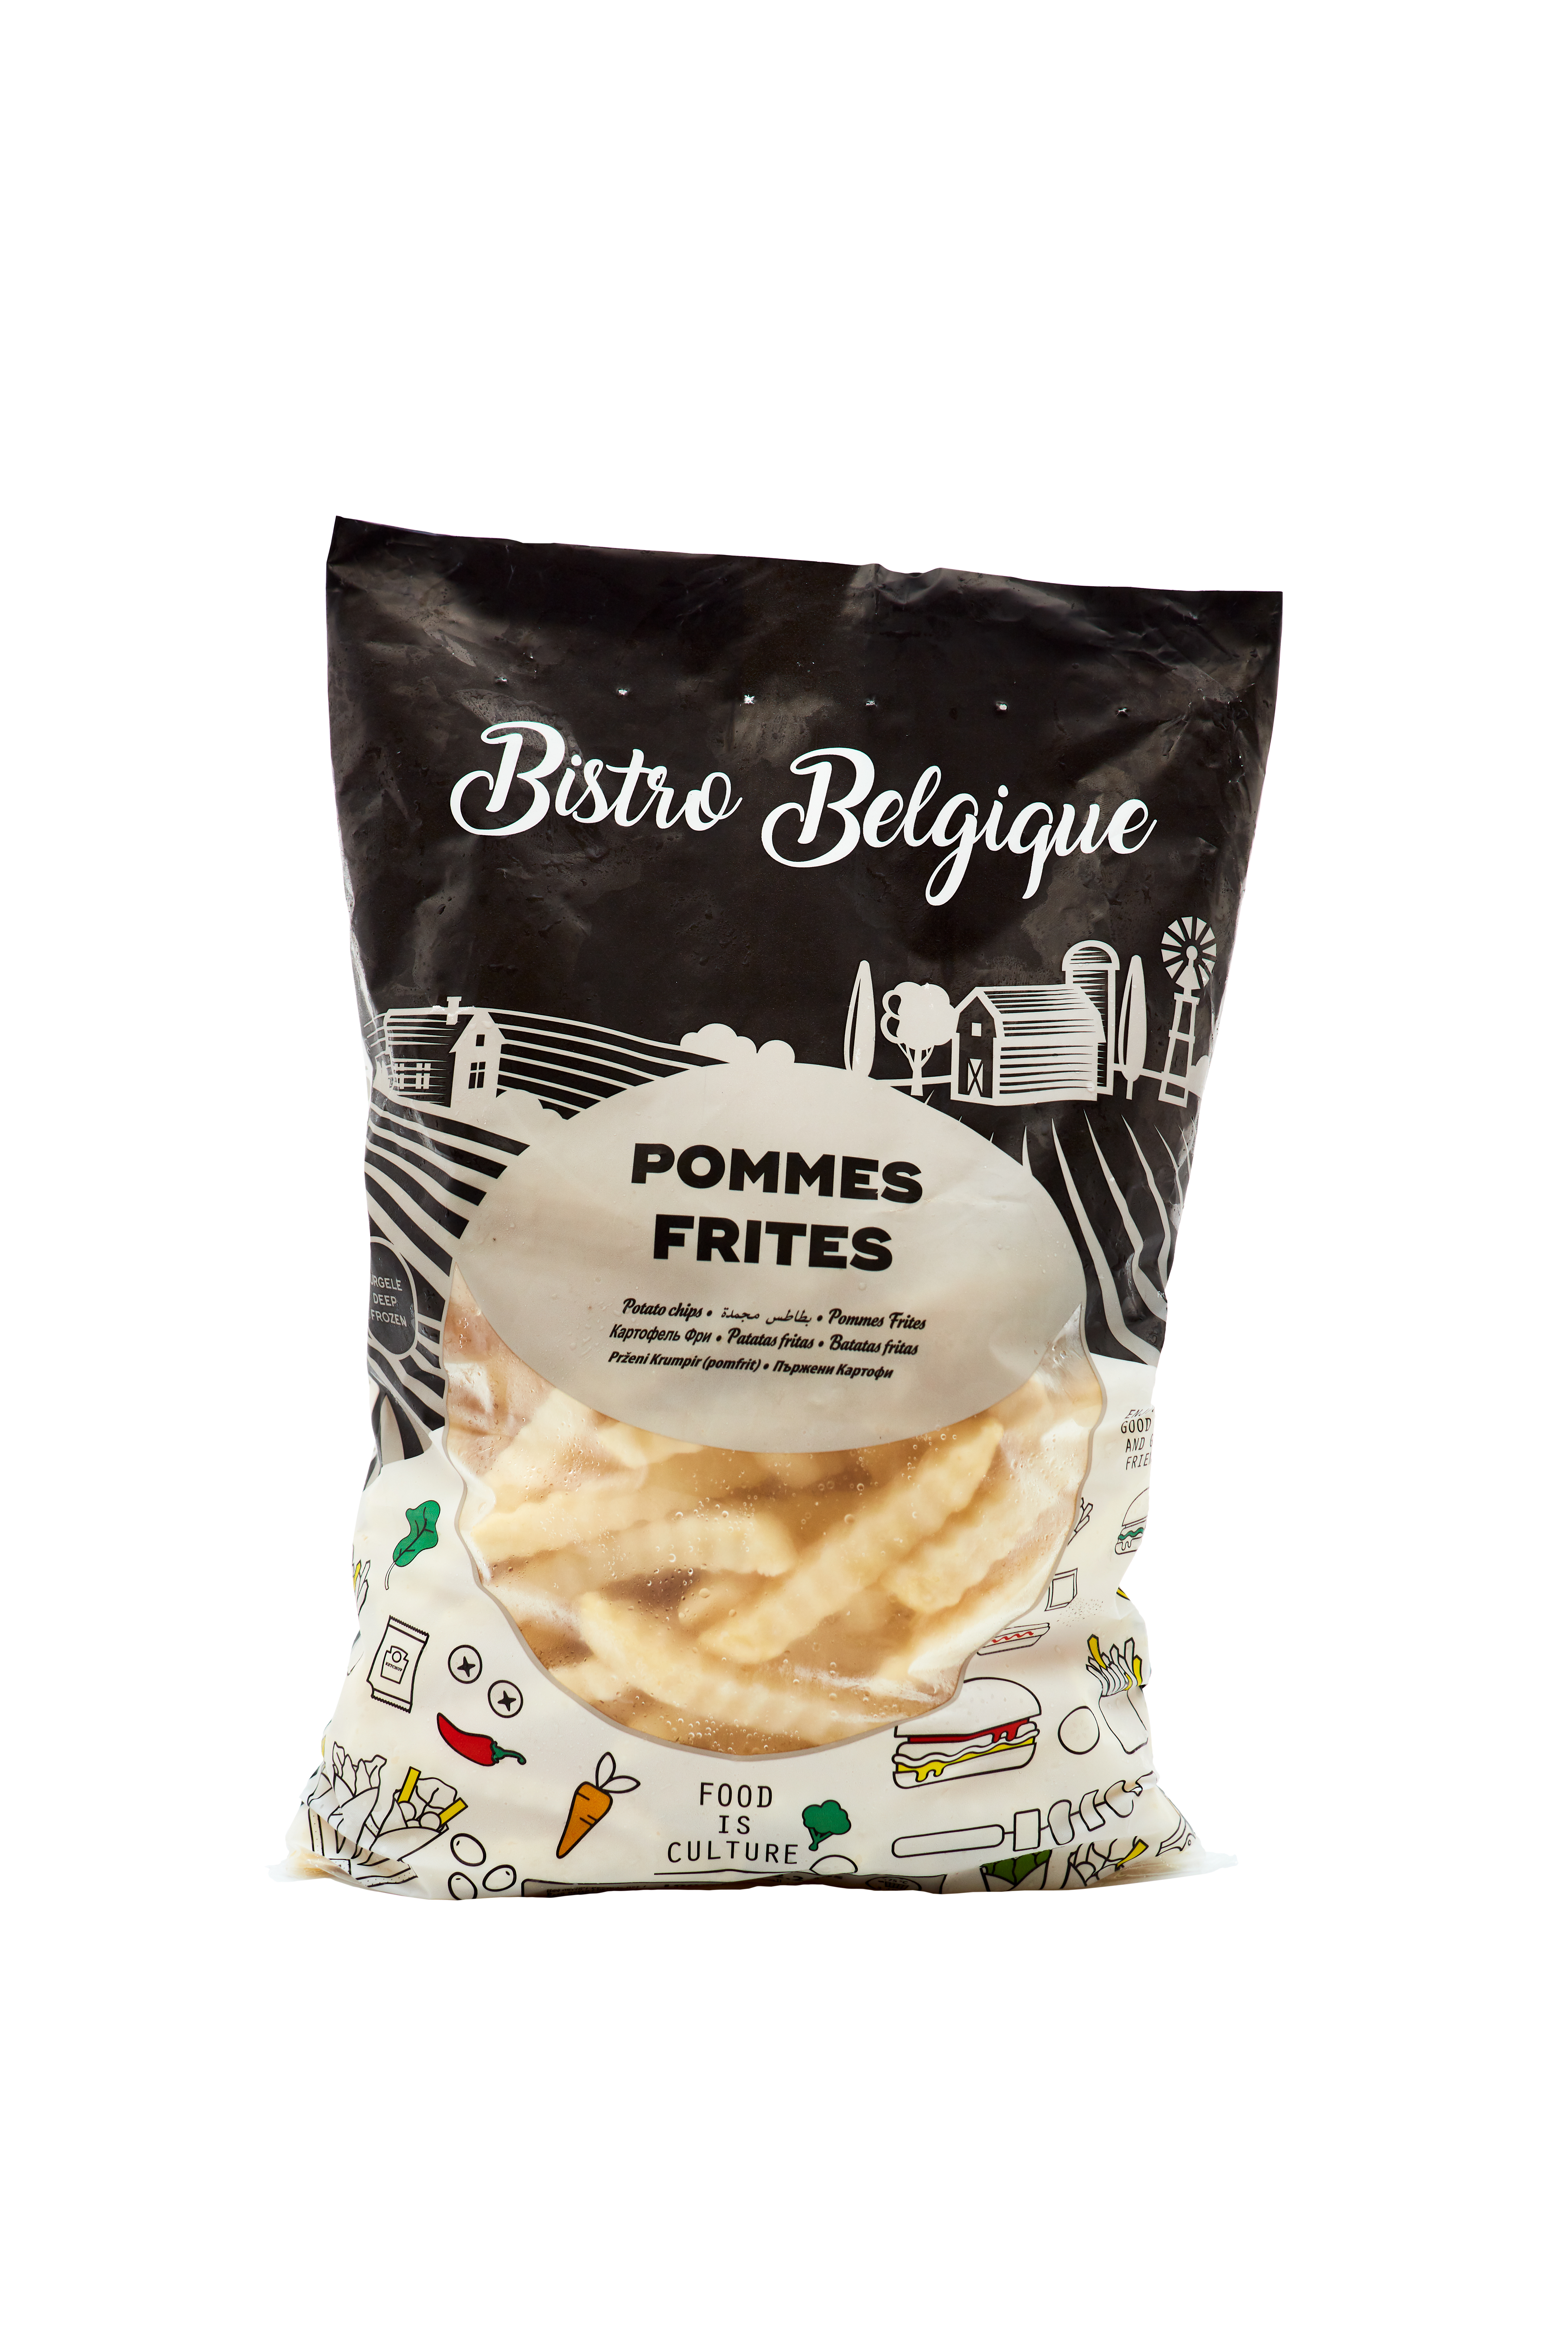 French fries crinkle cut packaging Bistro Belgique brand